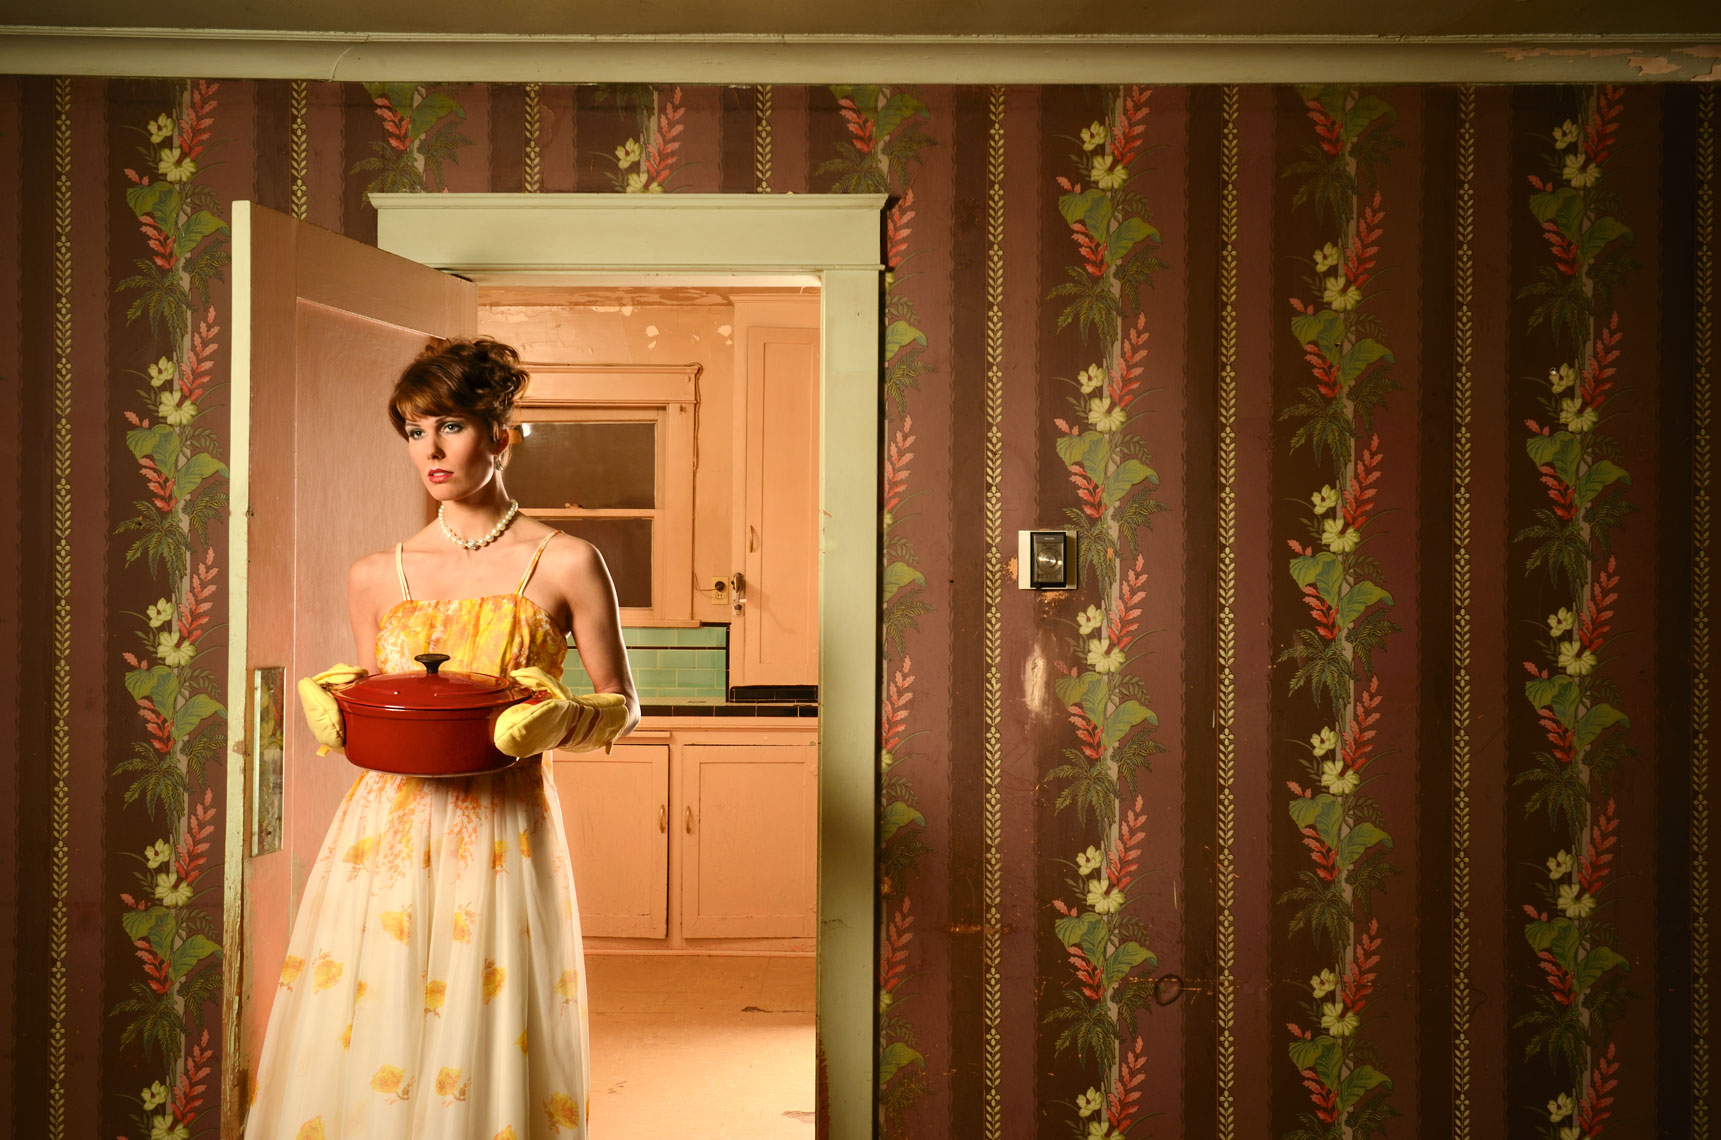 Portrait-of-young-woman-holding-casarole-dish--entering-vintage-dining-room-wearing-vintage-dress-by-Los-Angeles-environmental-portrait-photographer.